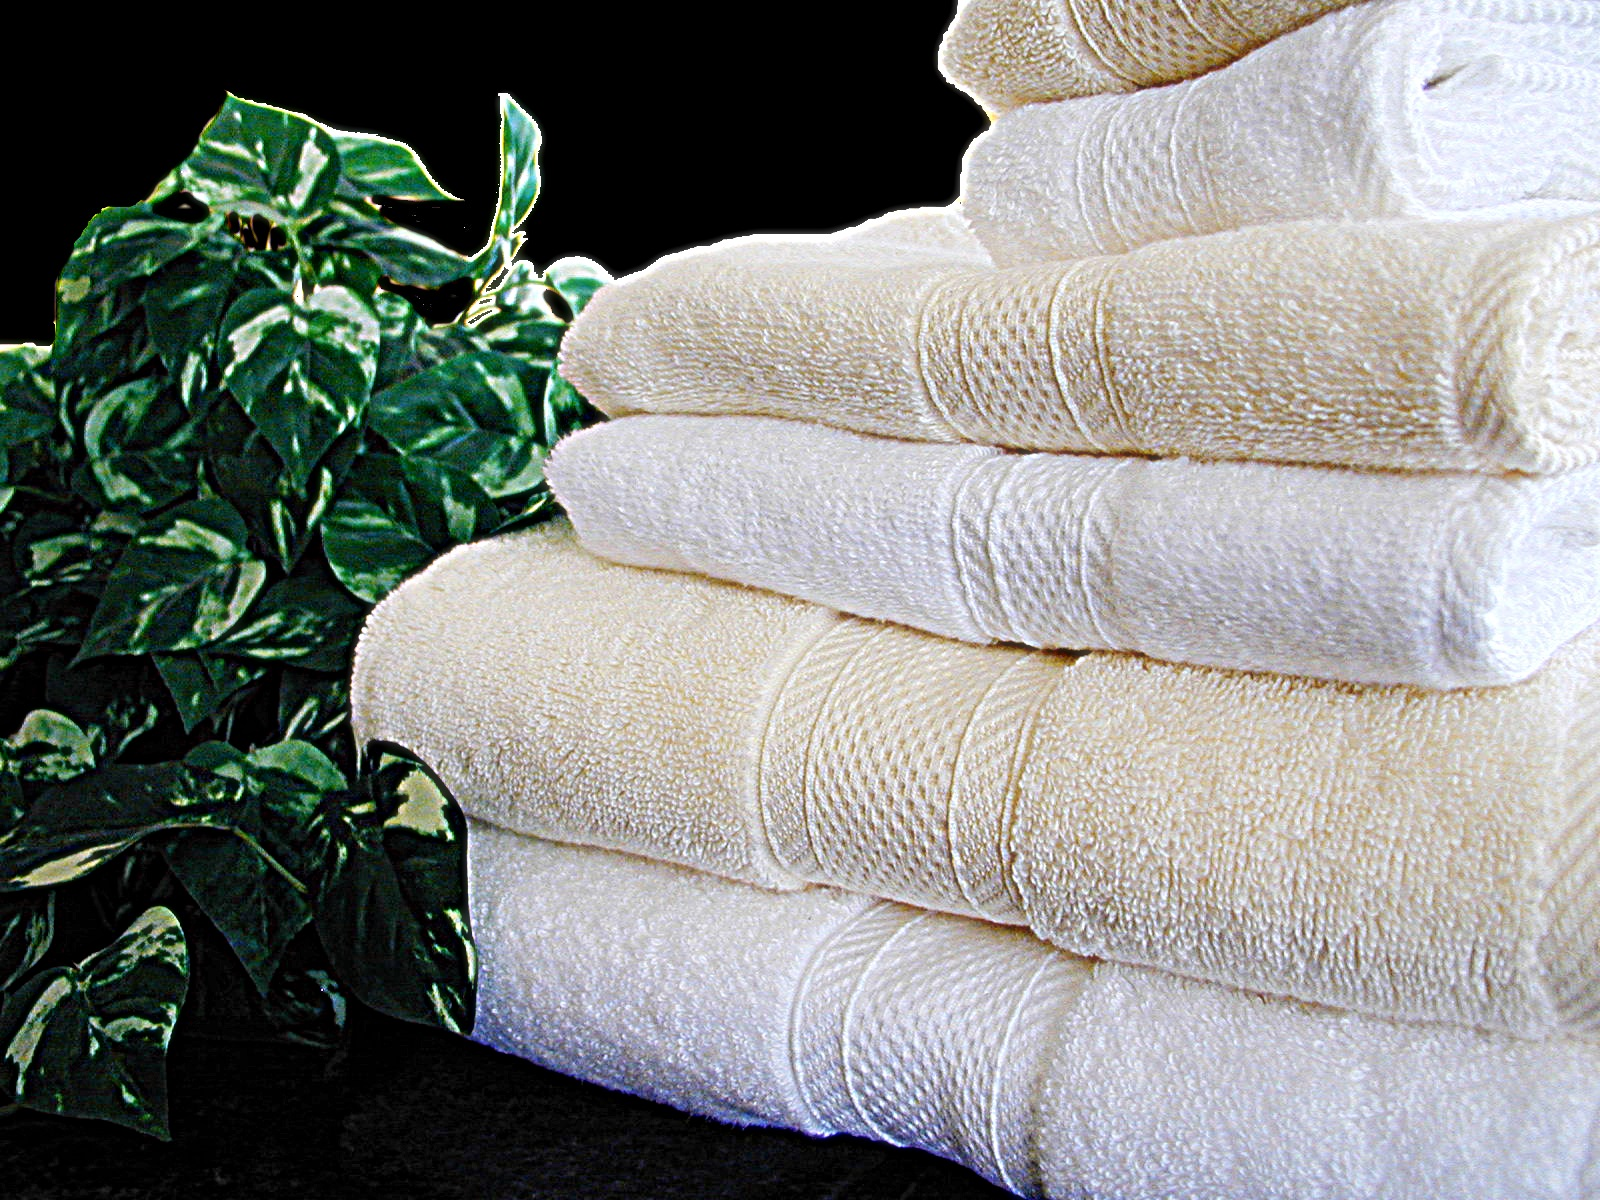 Towels Hotel miasma. Master Linens  Factory direct finest hotel towels in the world